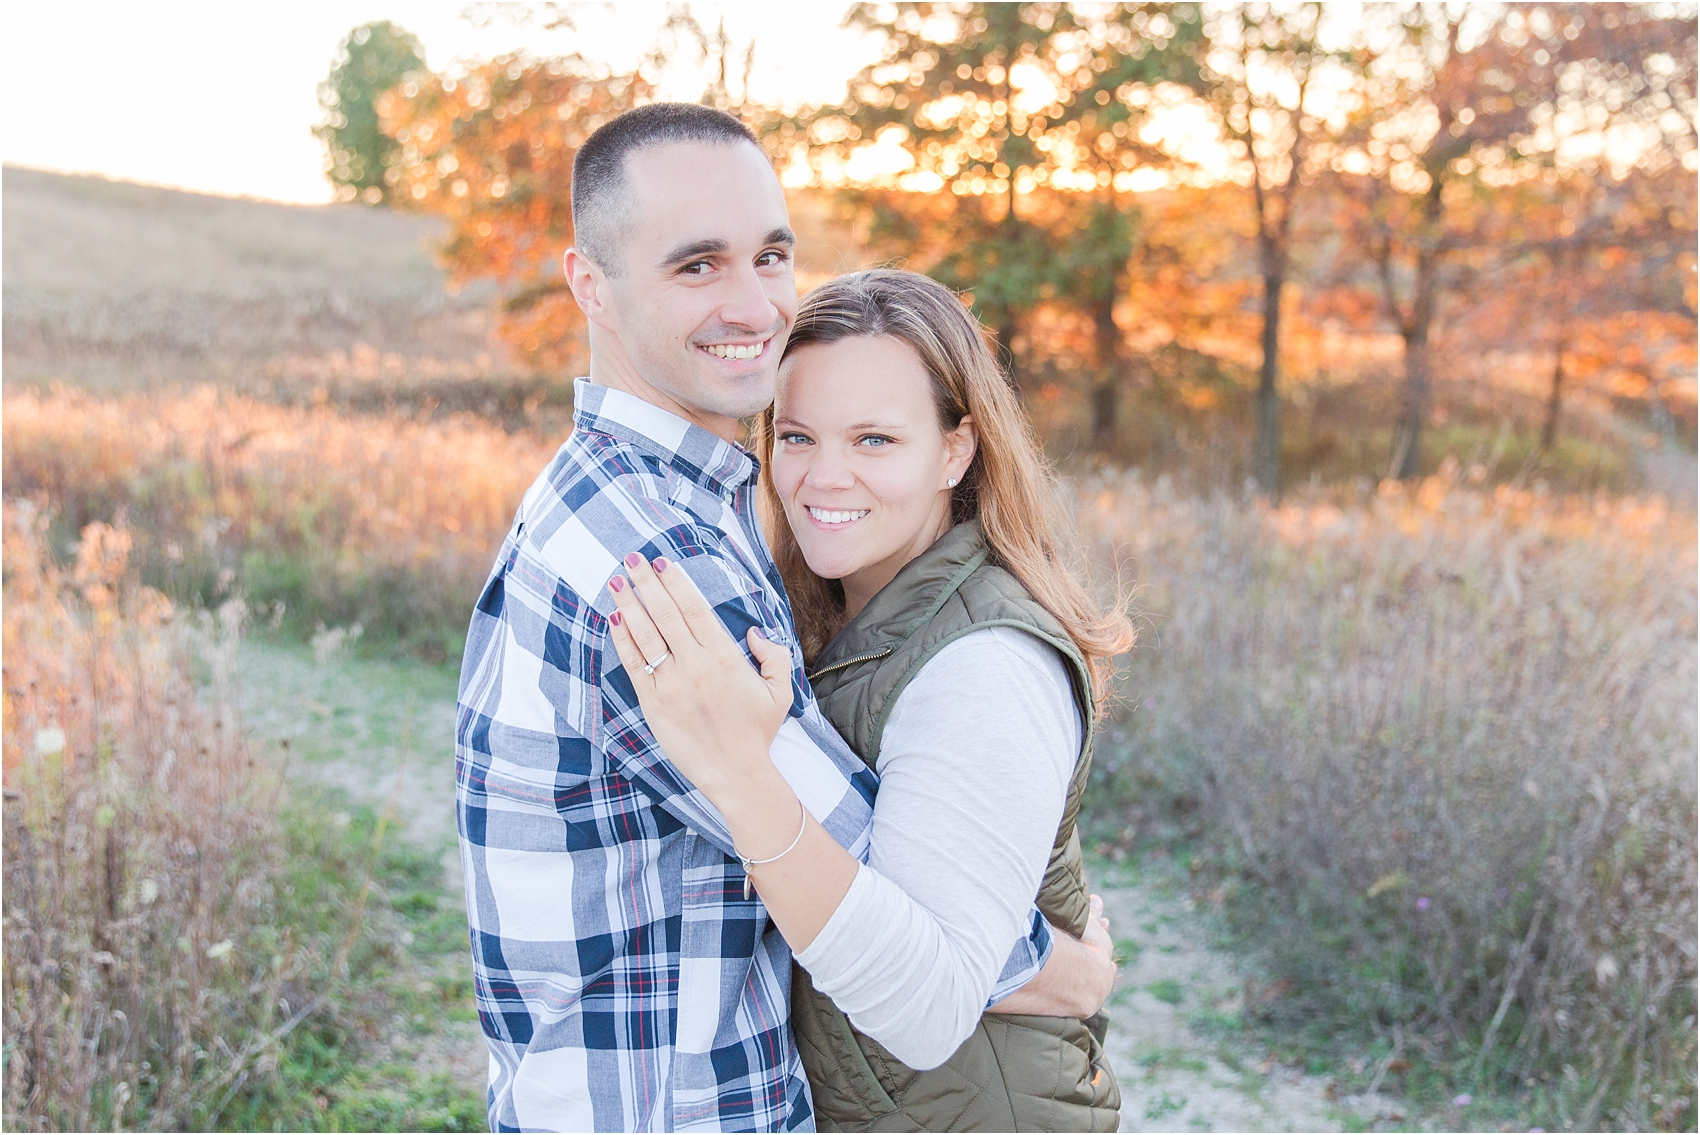 romantic-fall-engagement-photos-at-indian-springs-metropark-in-clarkston-mi-by-courtney-carolyn-photography_0031.jpg